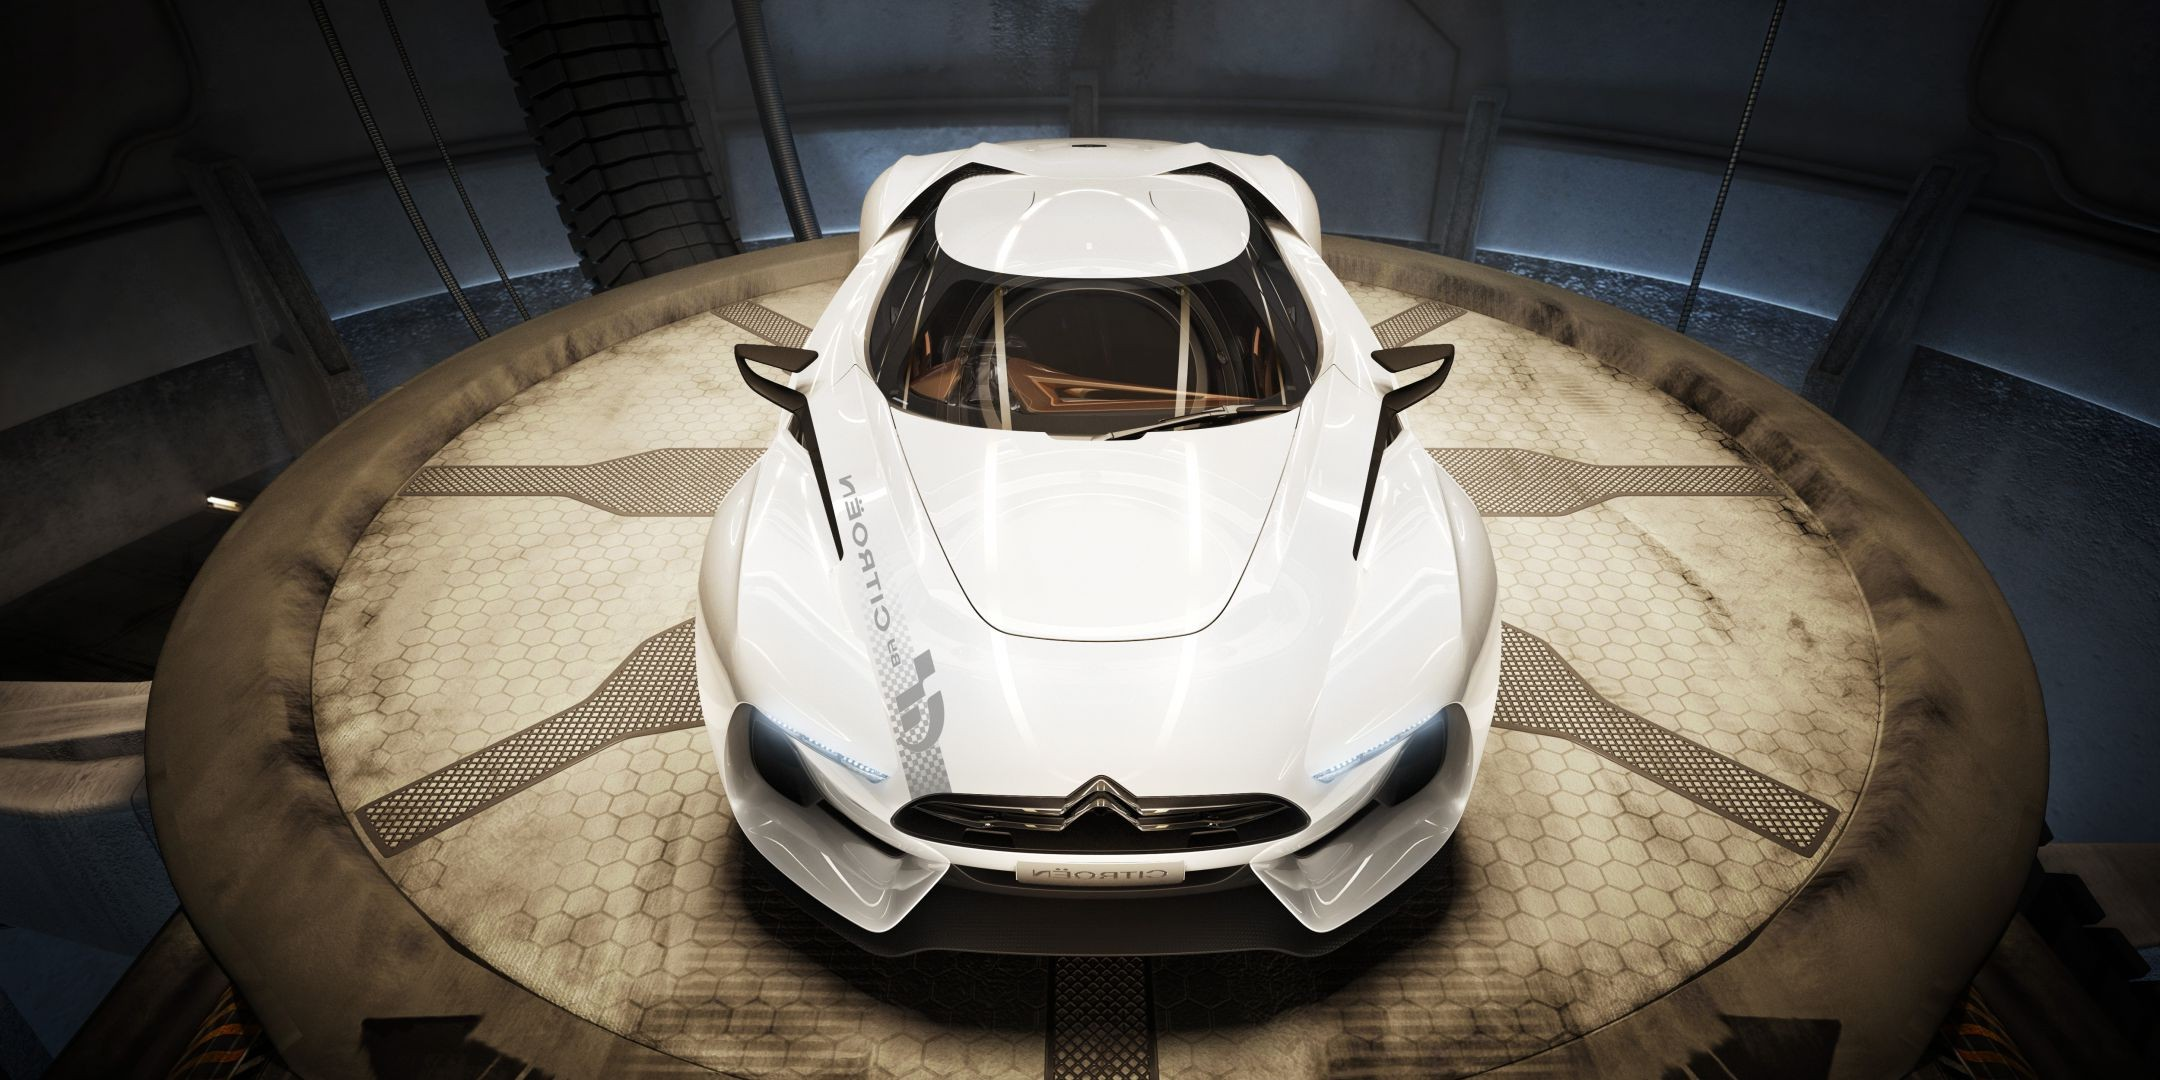 concept gt concept car cars citroen Car light